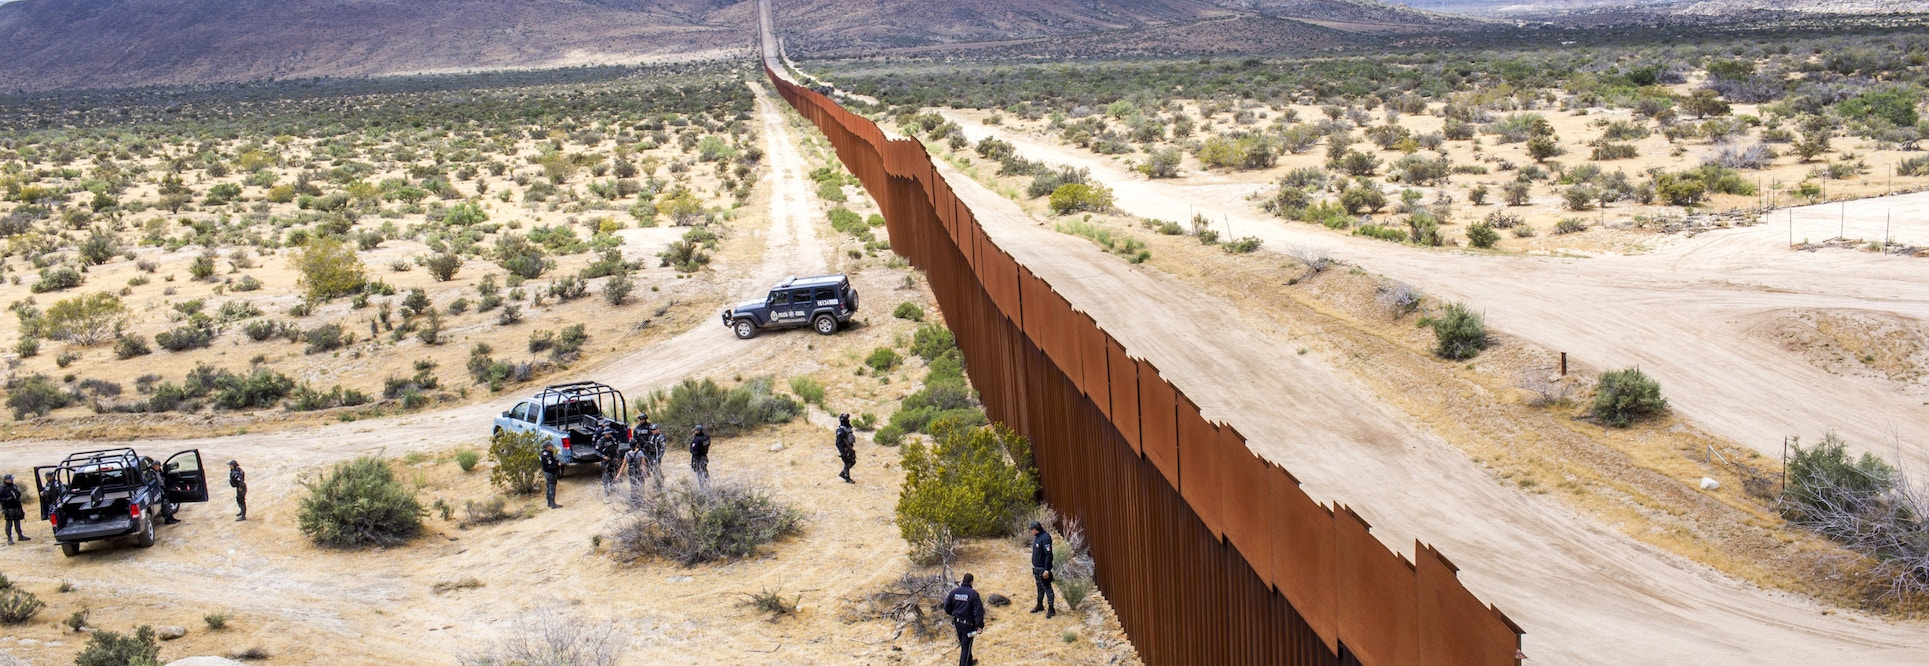 Troops: To the border!